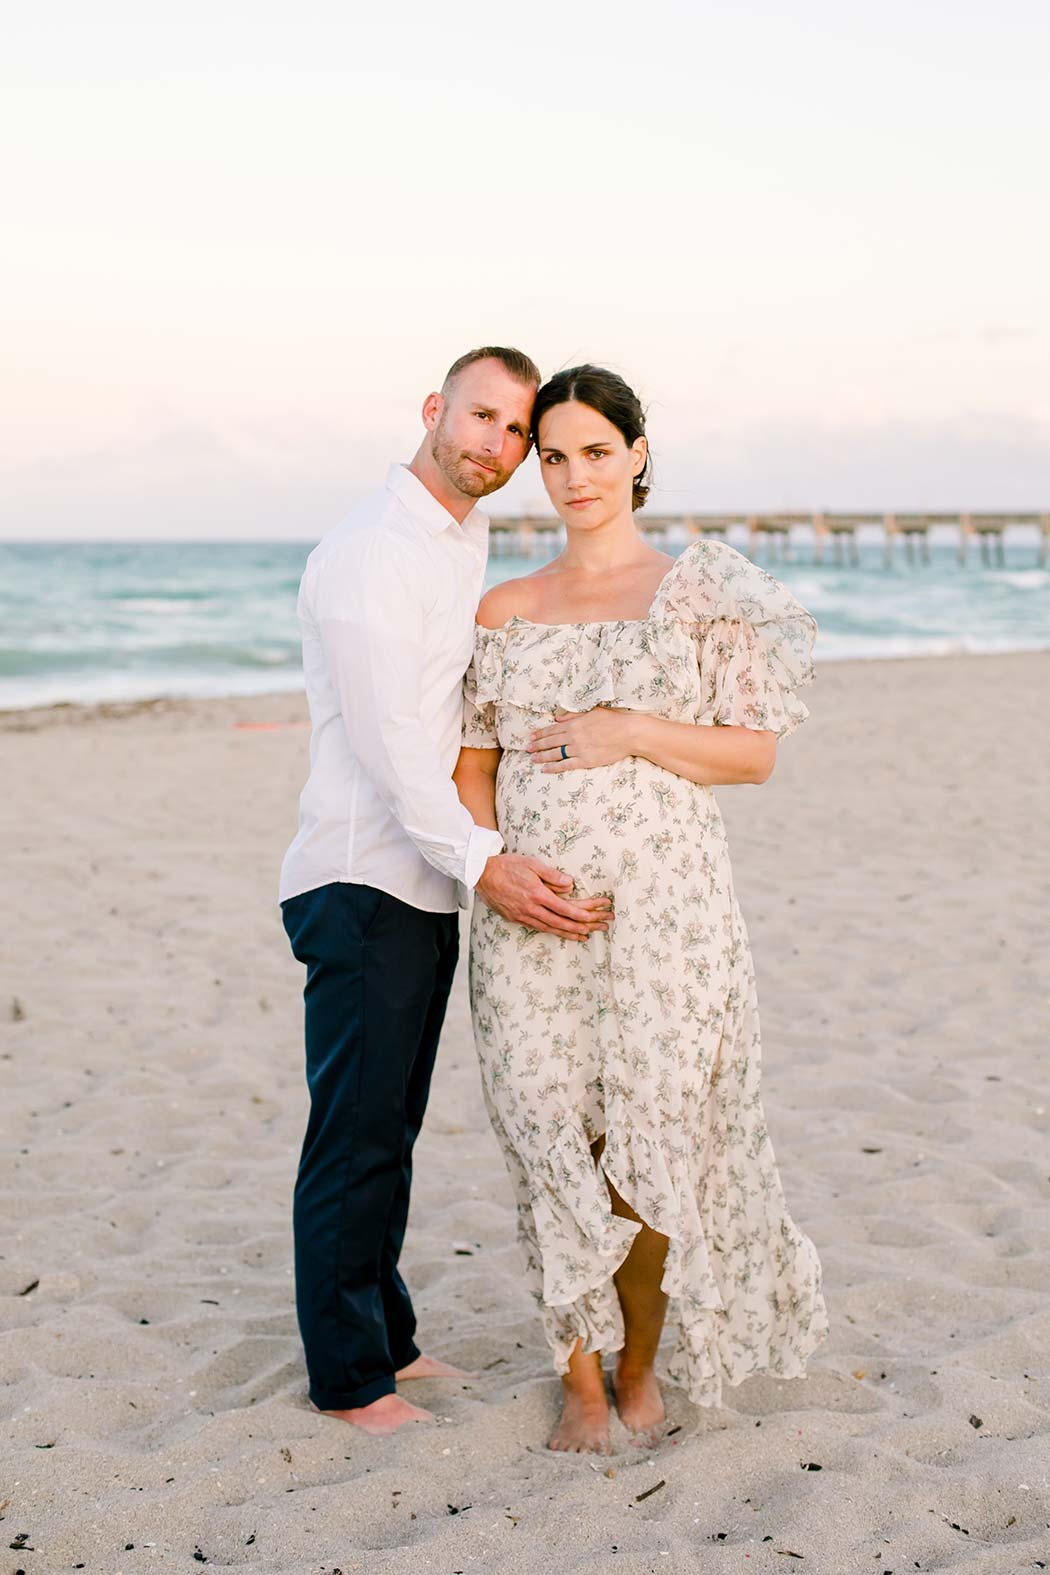 maternity poses for expectant mothers | fort lauderdale maternity photoshoot | maternity pose on beach | maternity beach photography | fort lauderdale beach maternity photographer